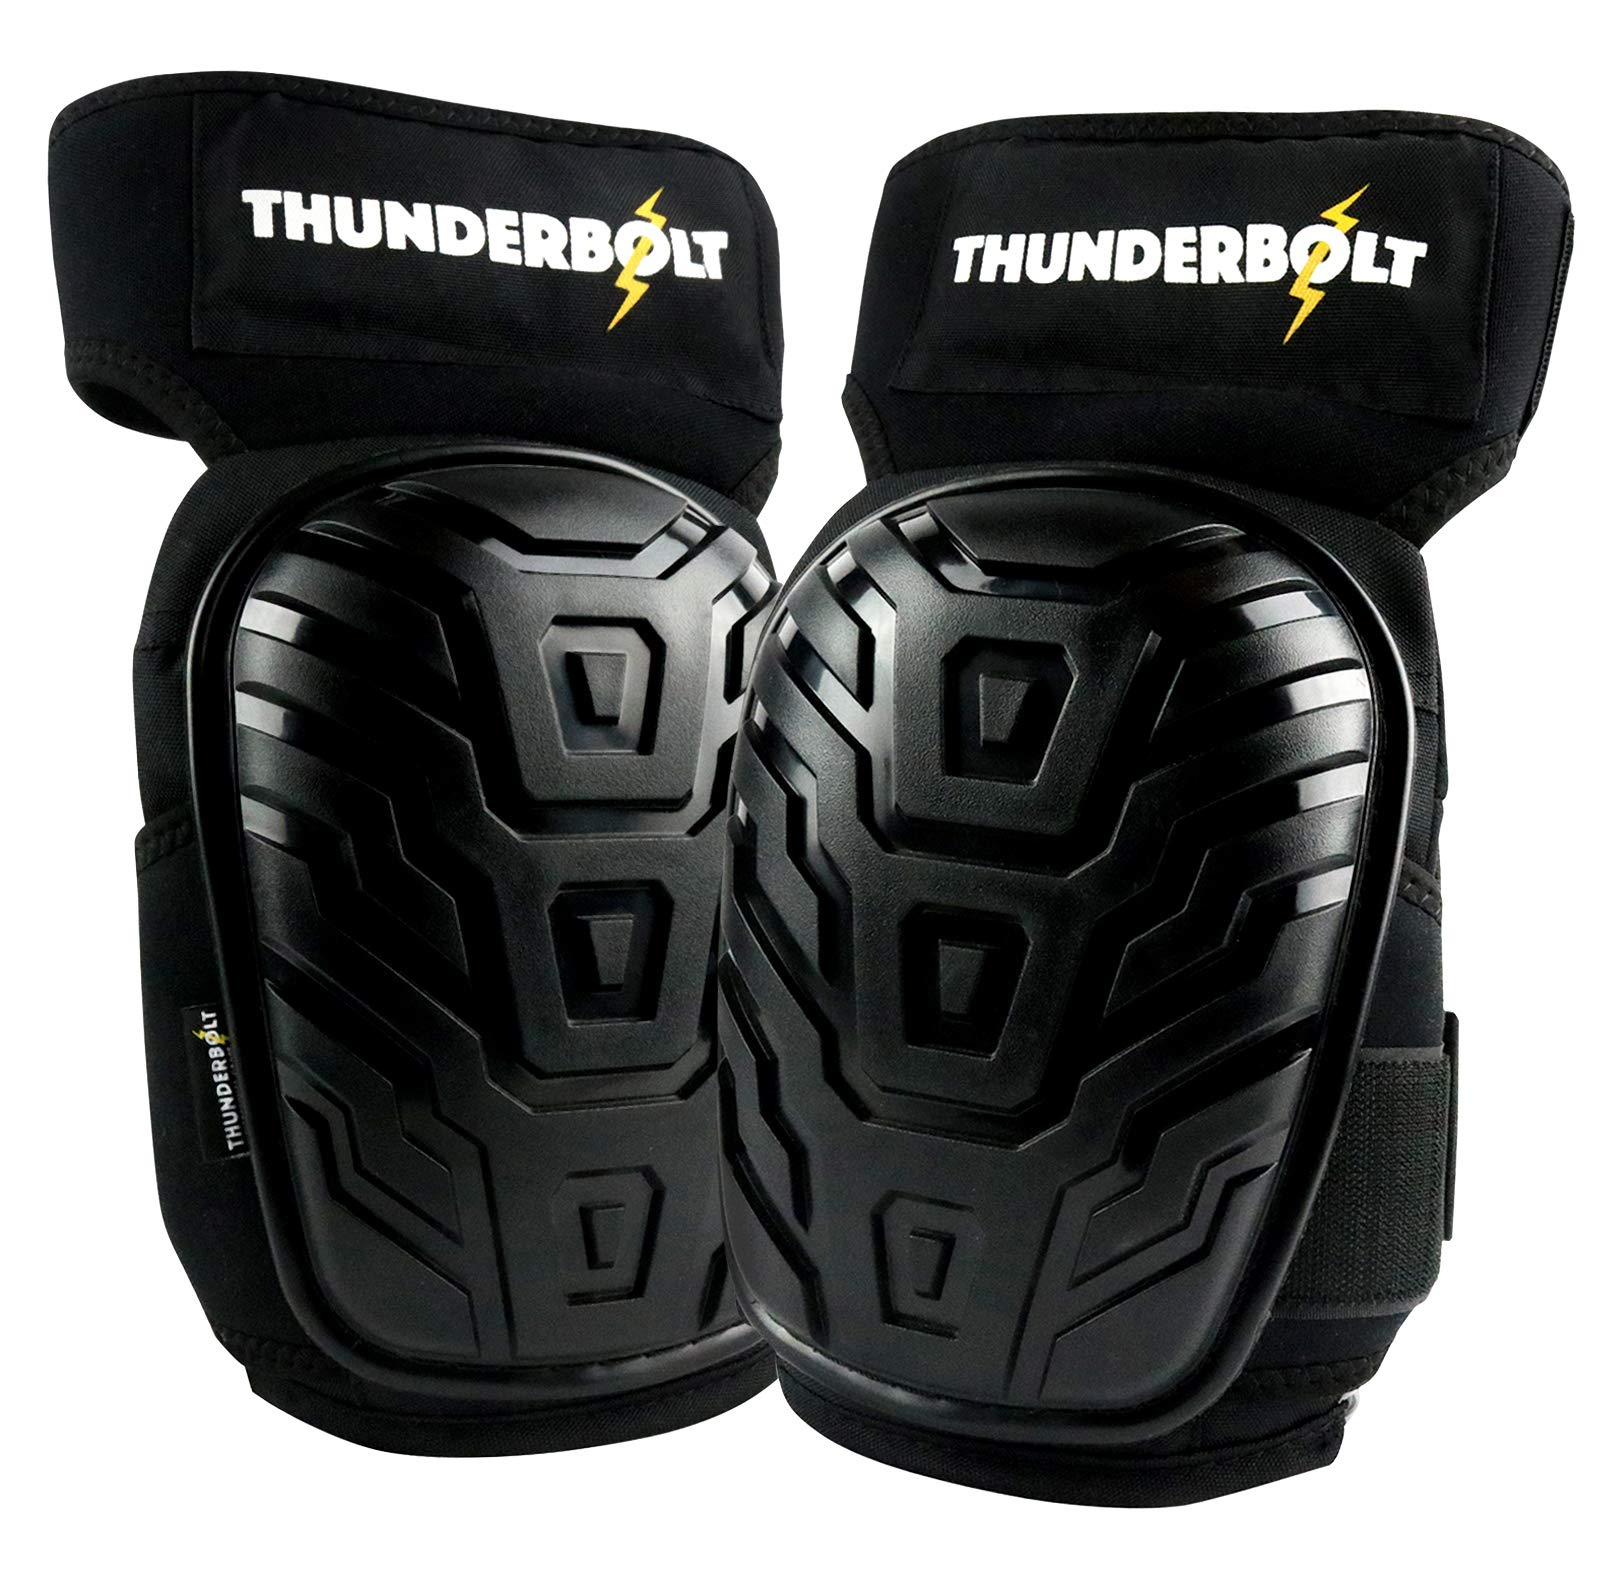 Professional Knee Pads for Work by Thunderbolt with Heavy Duty Foam Cushioning and Gel Cushion Perfect for Construction, Flooring and Gardening with Adjustable Non-Slip Straps